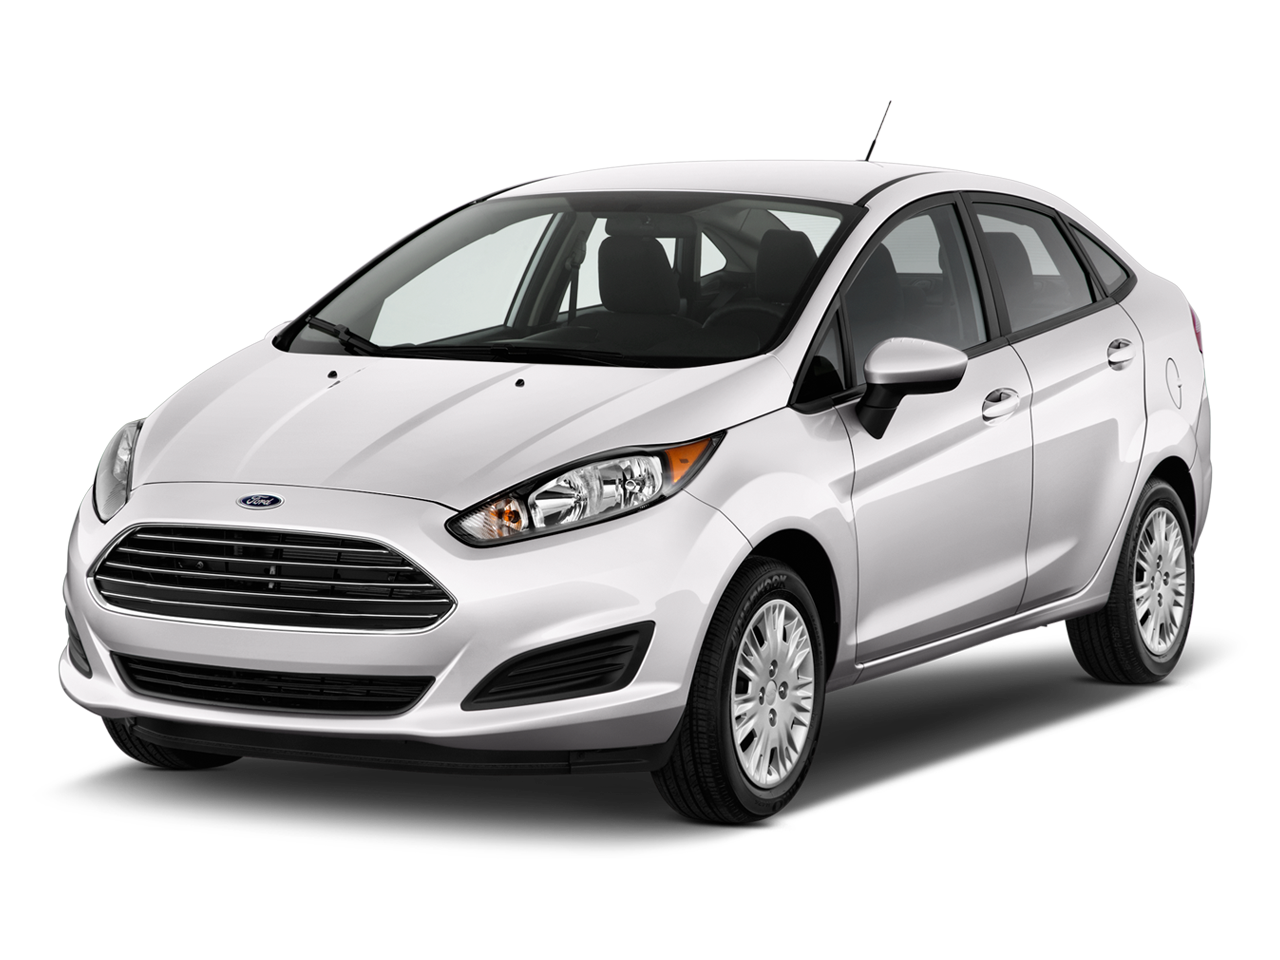 New Fiesta For Sale In Decatur IL